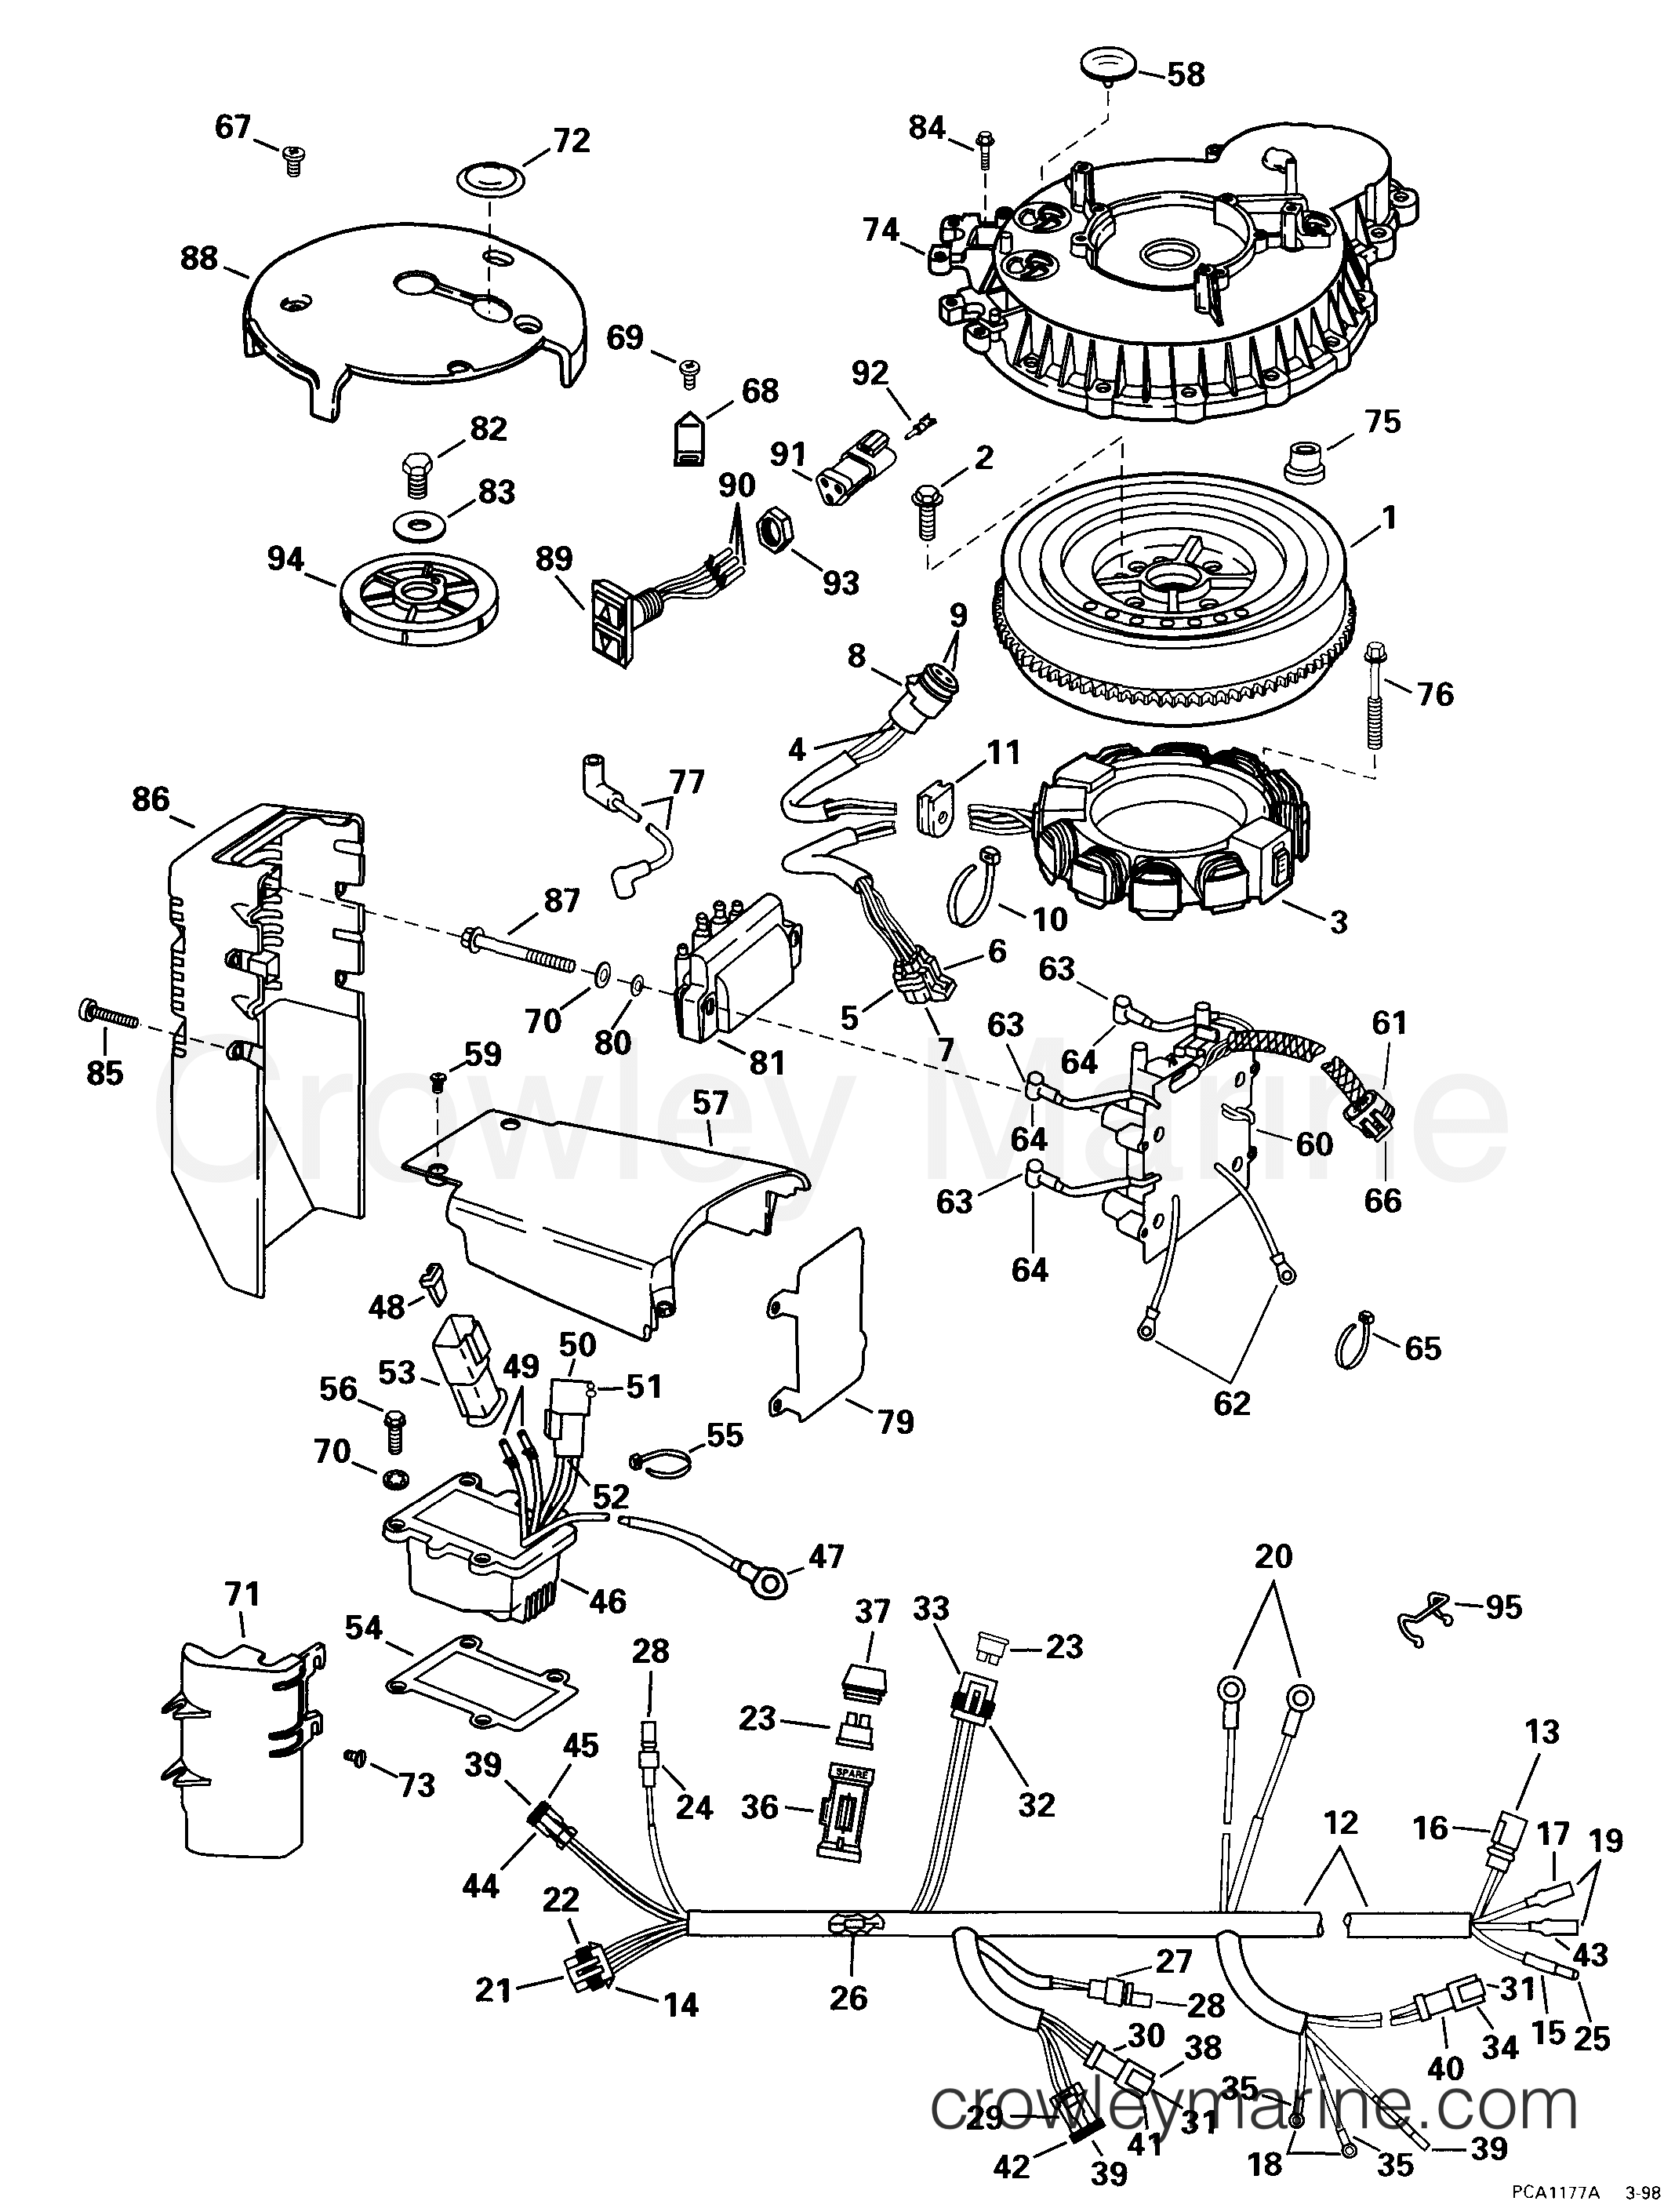 Johnson 115 Outboard Schematic